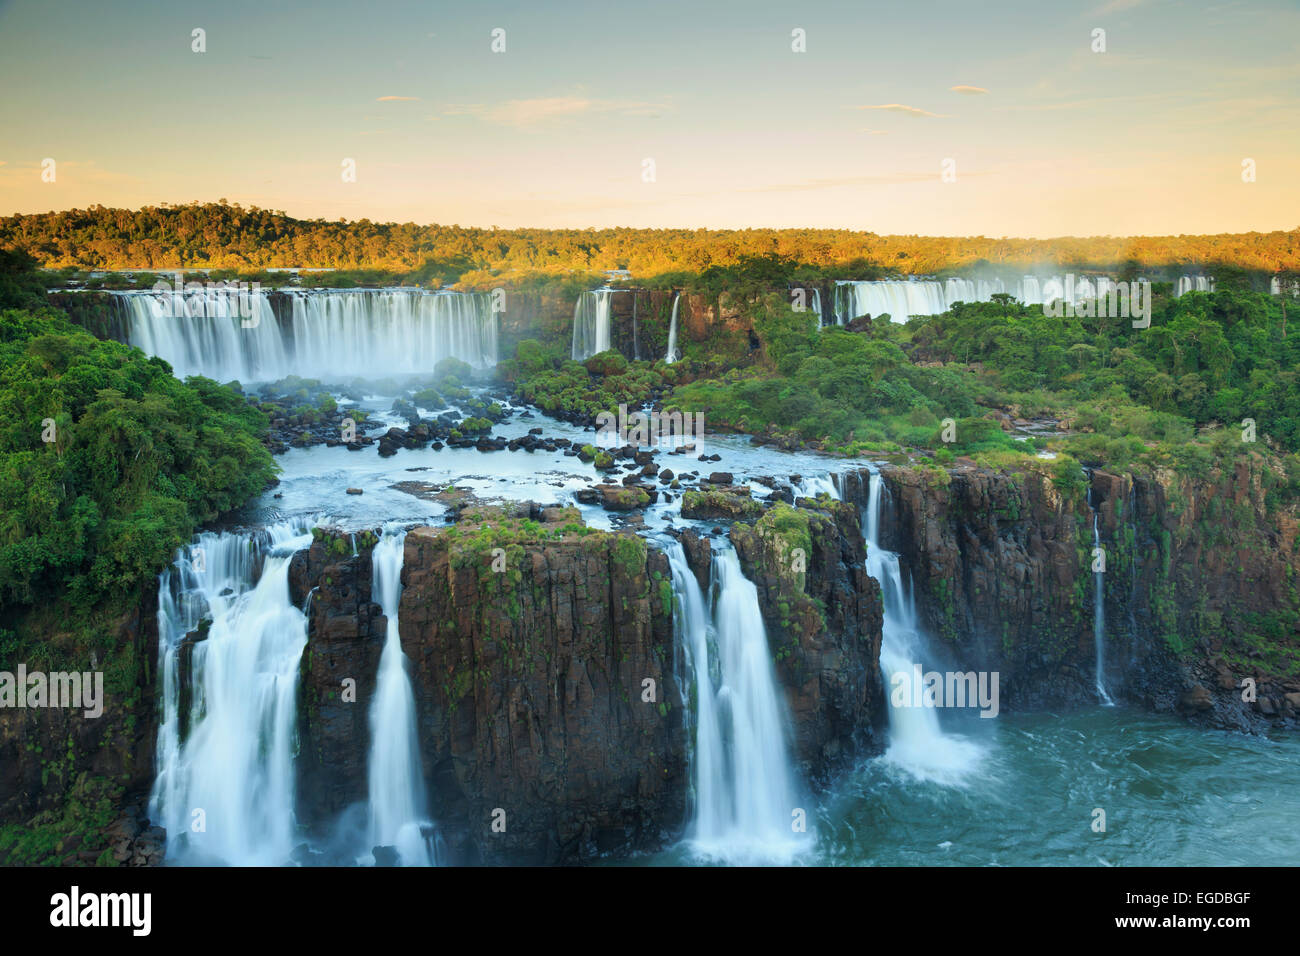 Le Brésil, l'État de Parana, Iguassu Falls National Park (Cataratas do Iguaçu) (UNESCO Site) Photo Stock